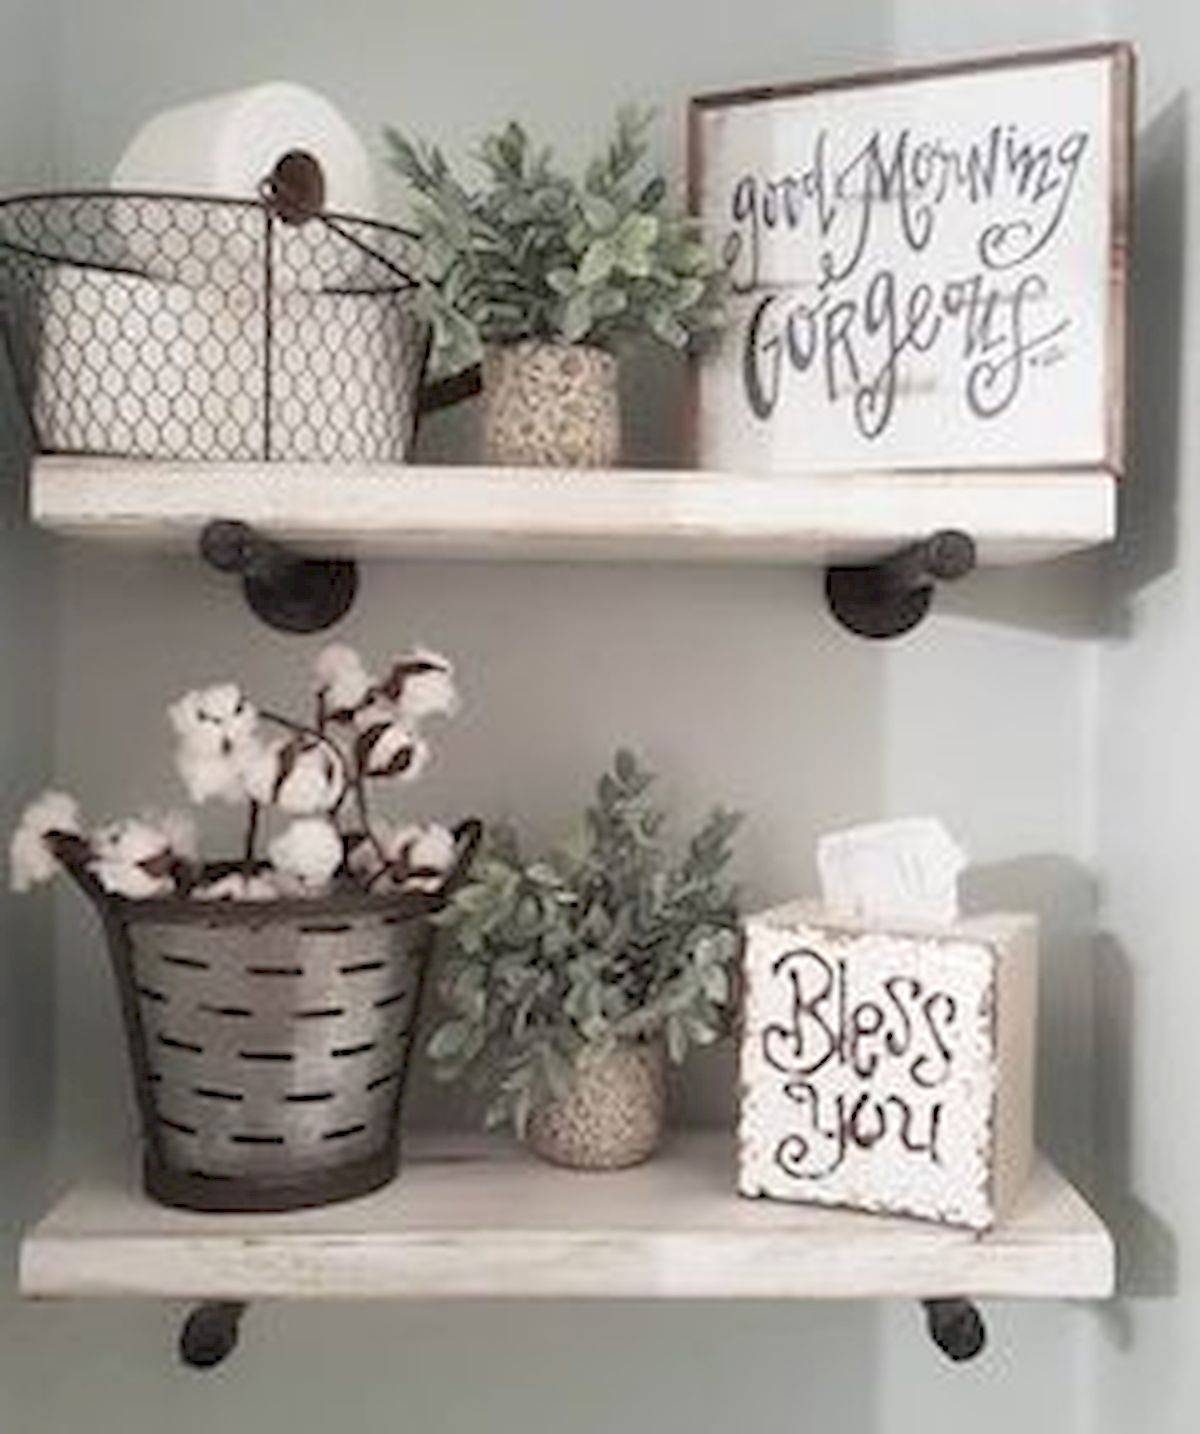 55 Inspiring DIY Farmhouse Decor Ideas On A Budget (32)